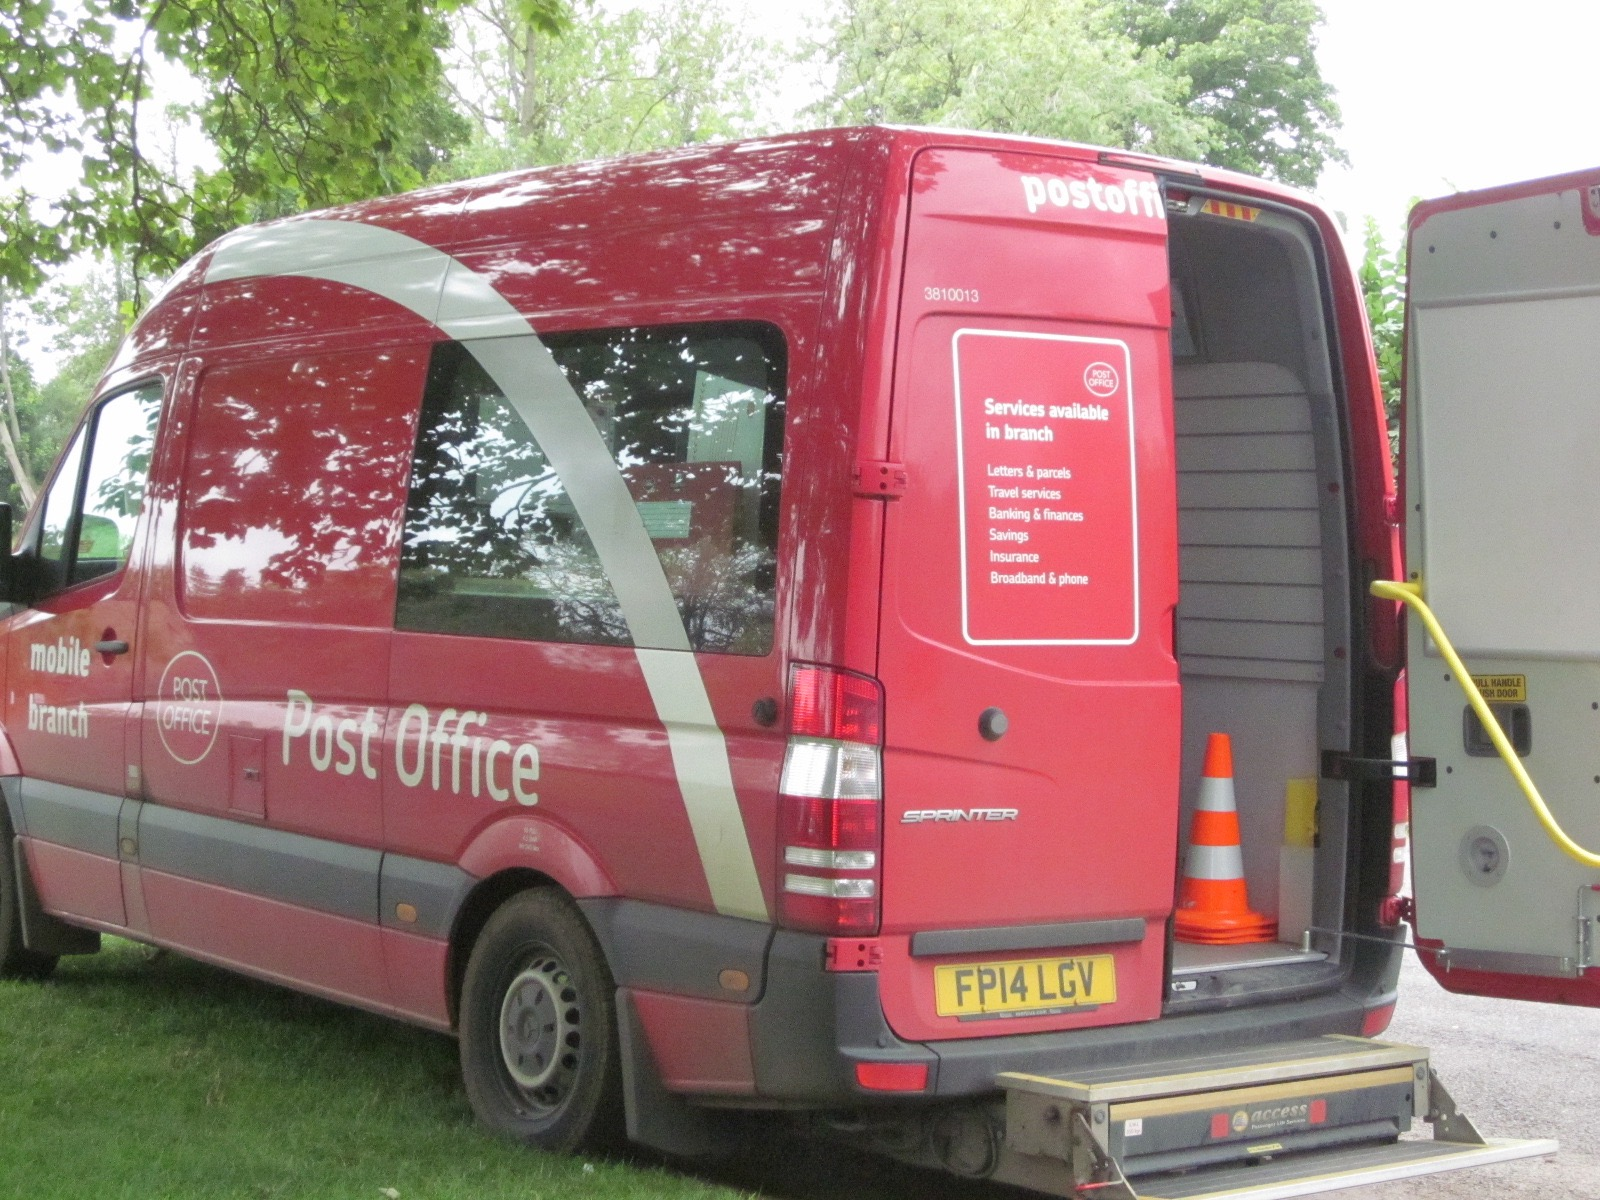 A mobile post office